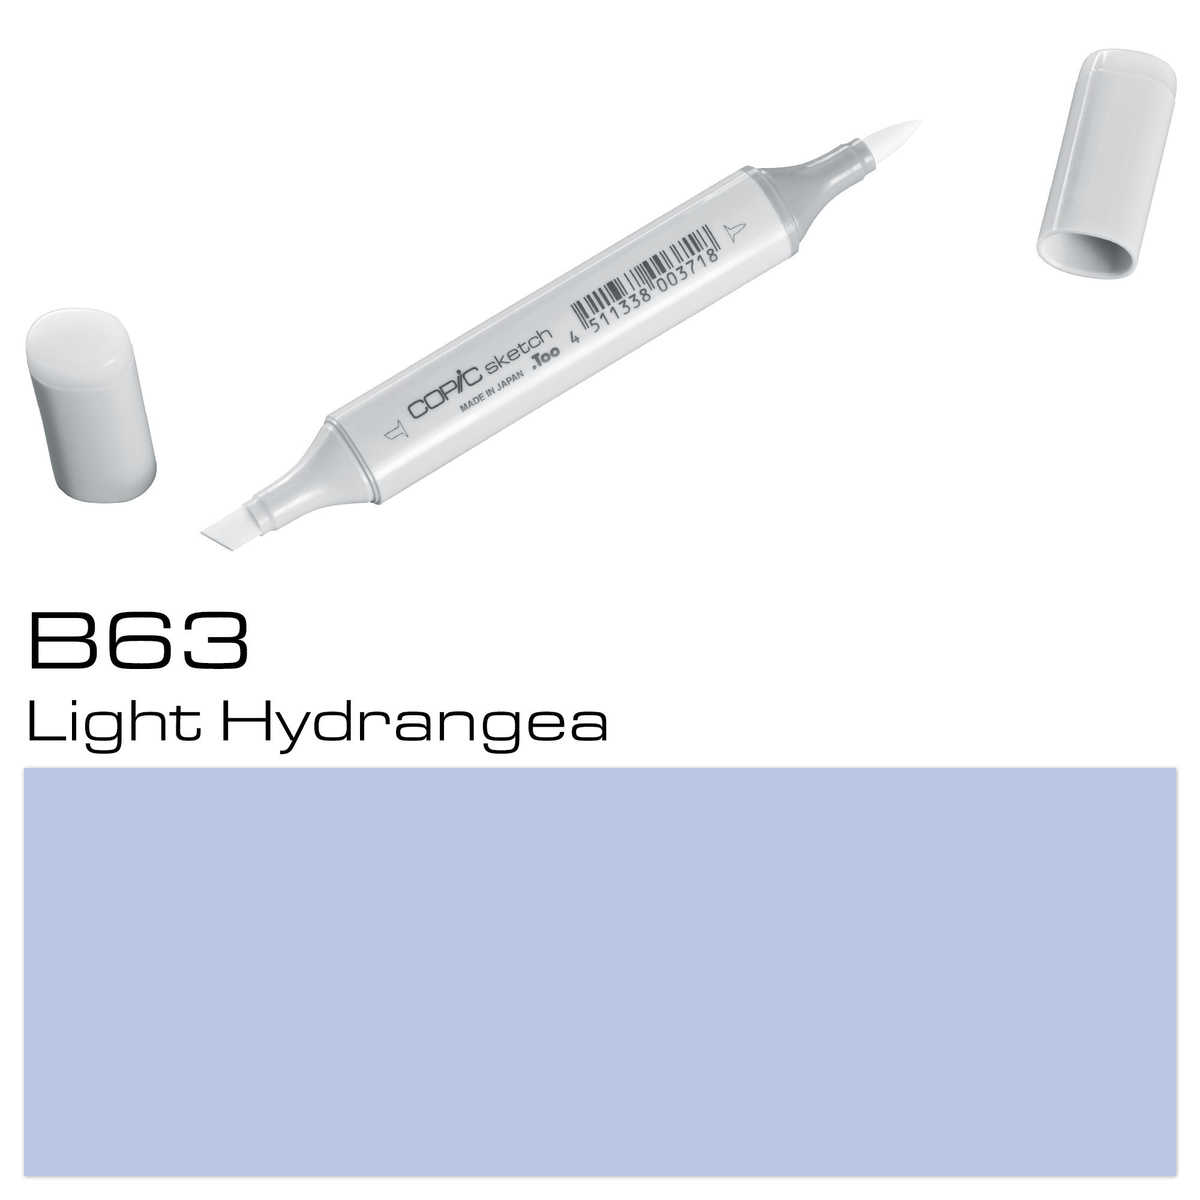 Copic Sketch B63 light hydran.